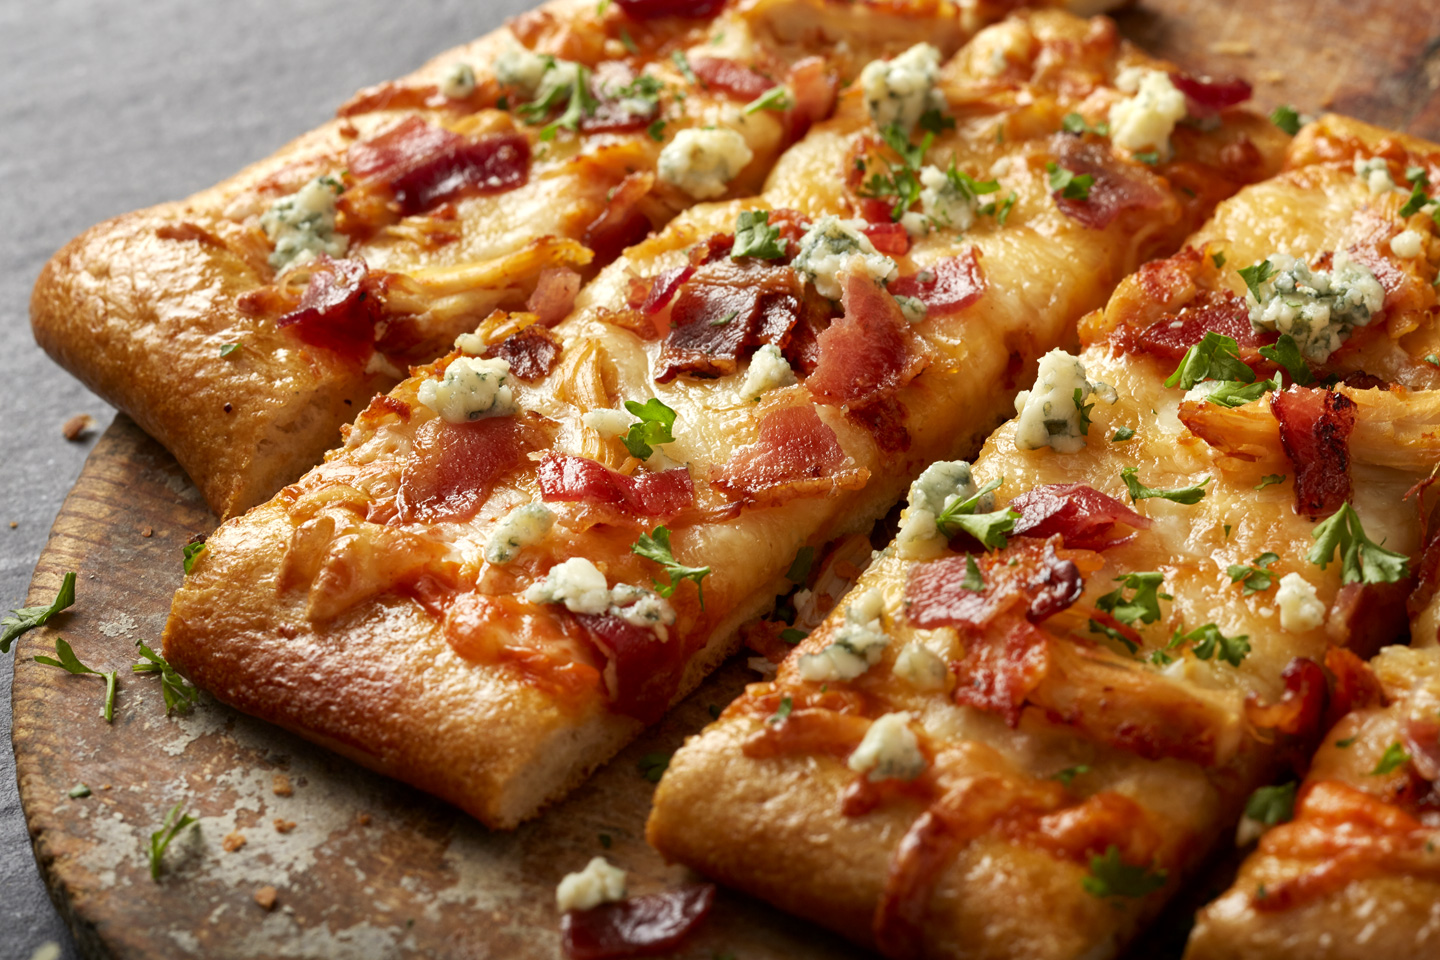 Flat-Breads-bacon-1028-apf